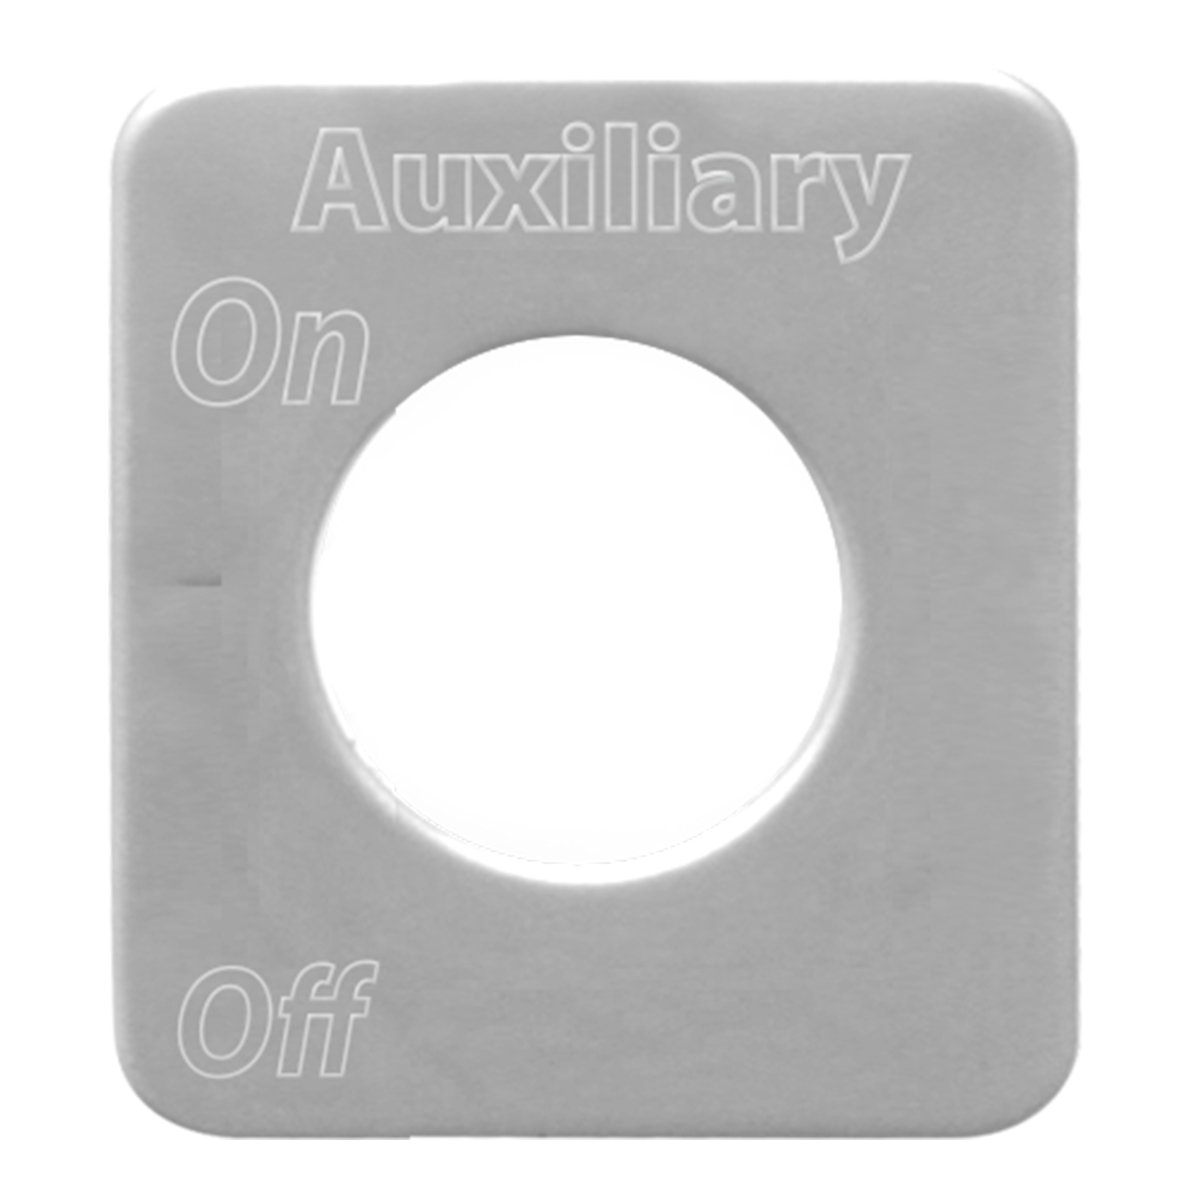 68599 Stainless Steel Auxiliary Switch Plate for KW